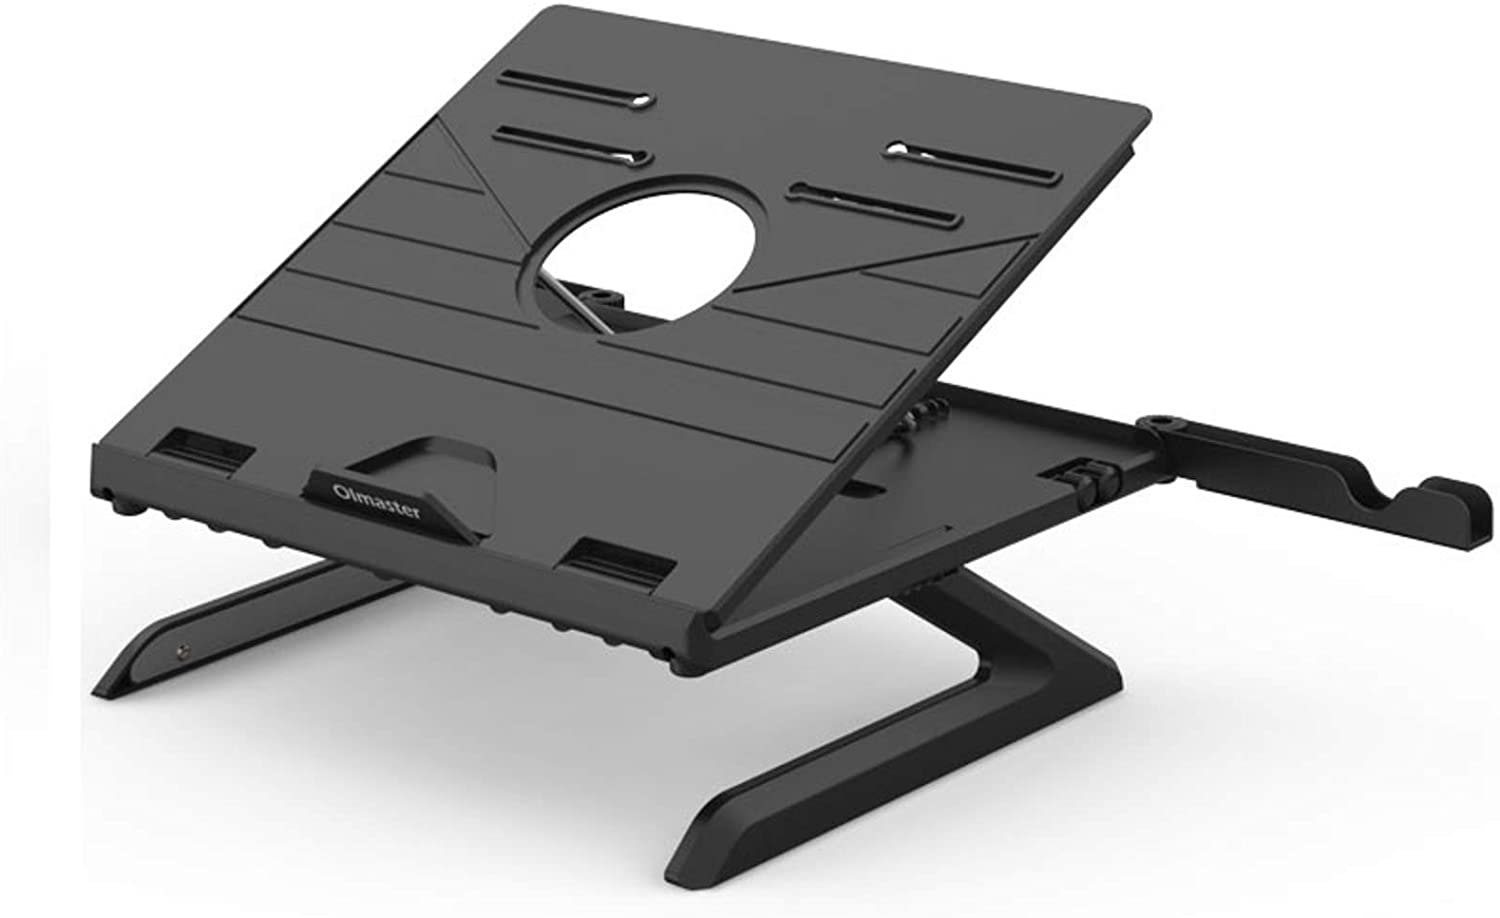 Laptop Outstanding Stand Foldable Adjustable Stan 12-17 Inch Arlington Mall Notebook